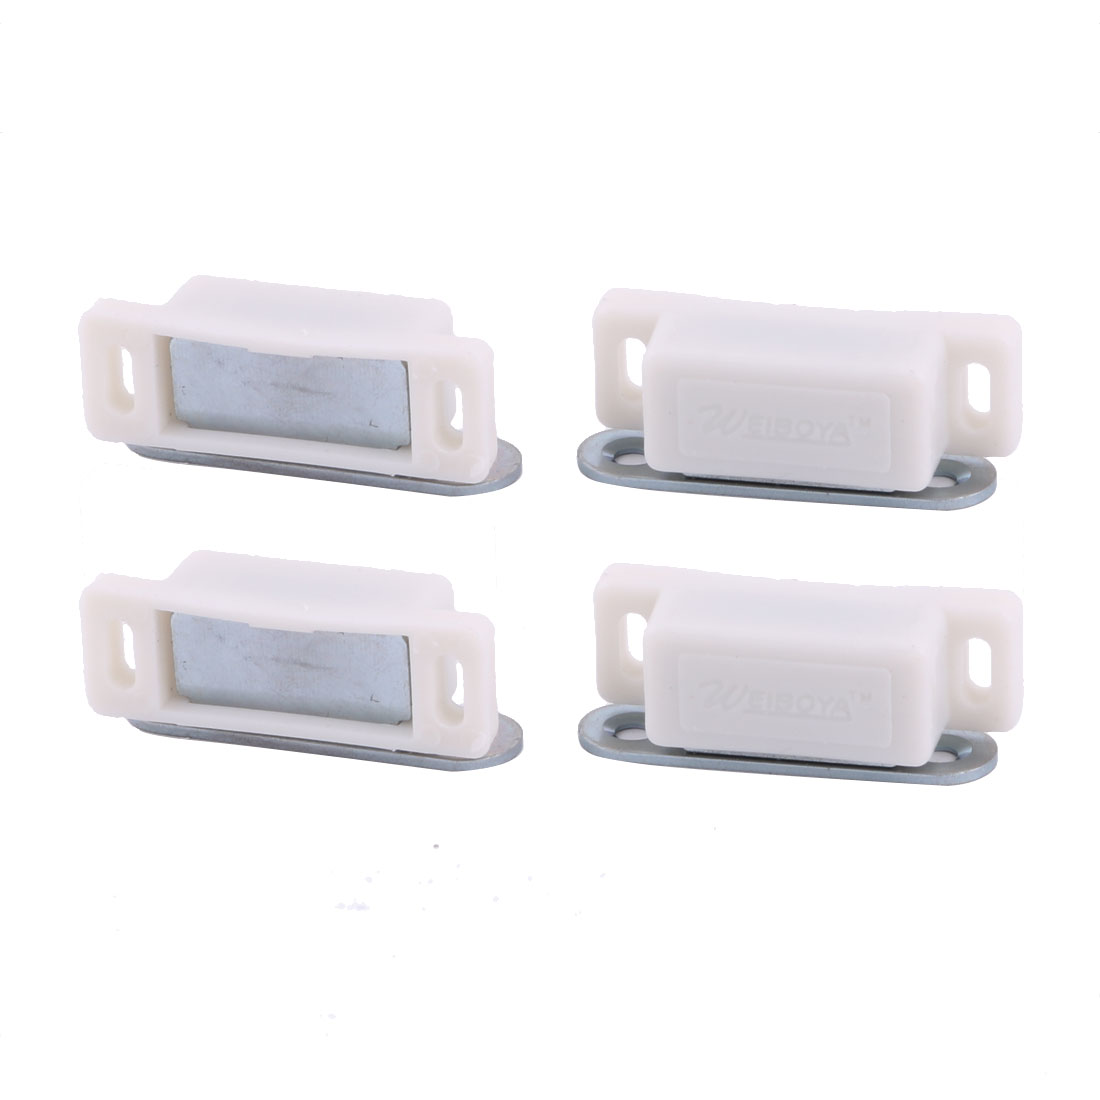 Home Room Plastic Gate Cupboard Cabinet Stopper Holder Magnetic Catch Latch 4pcs